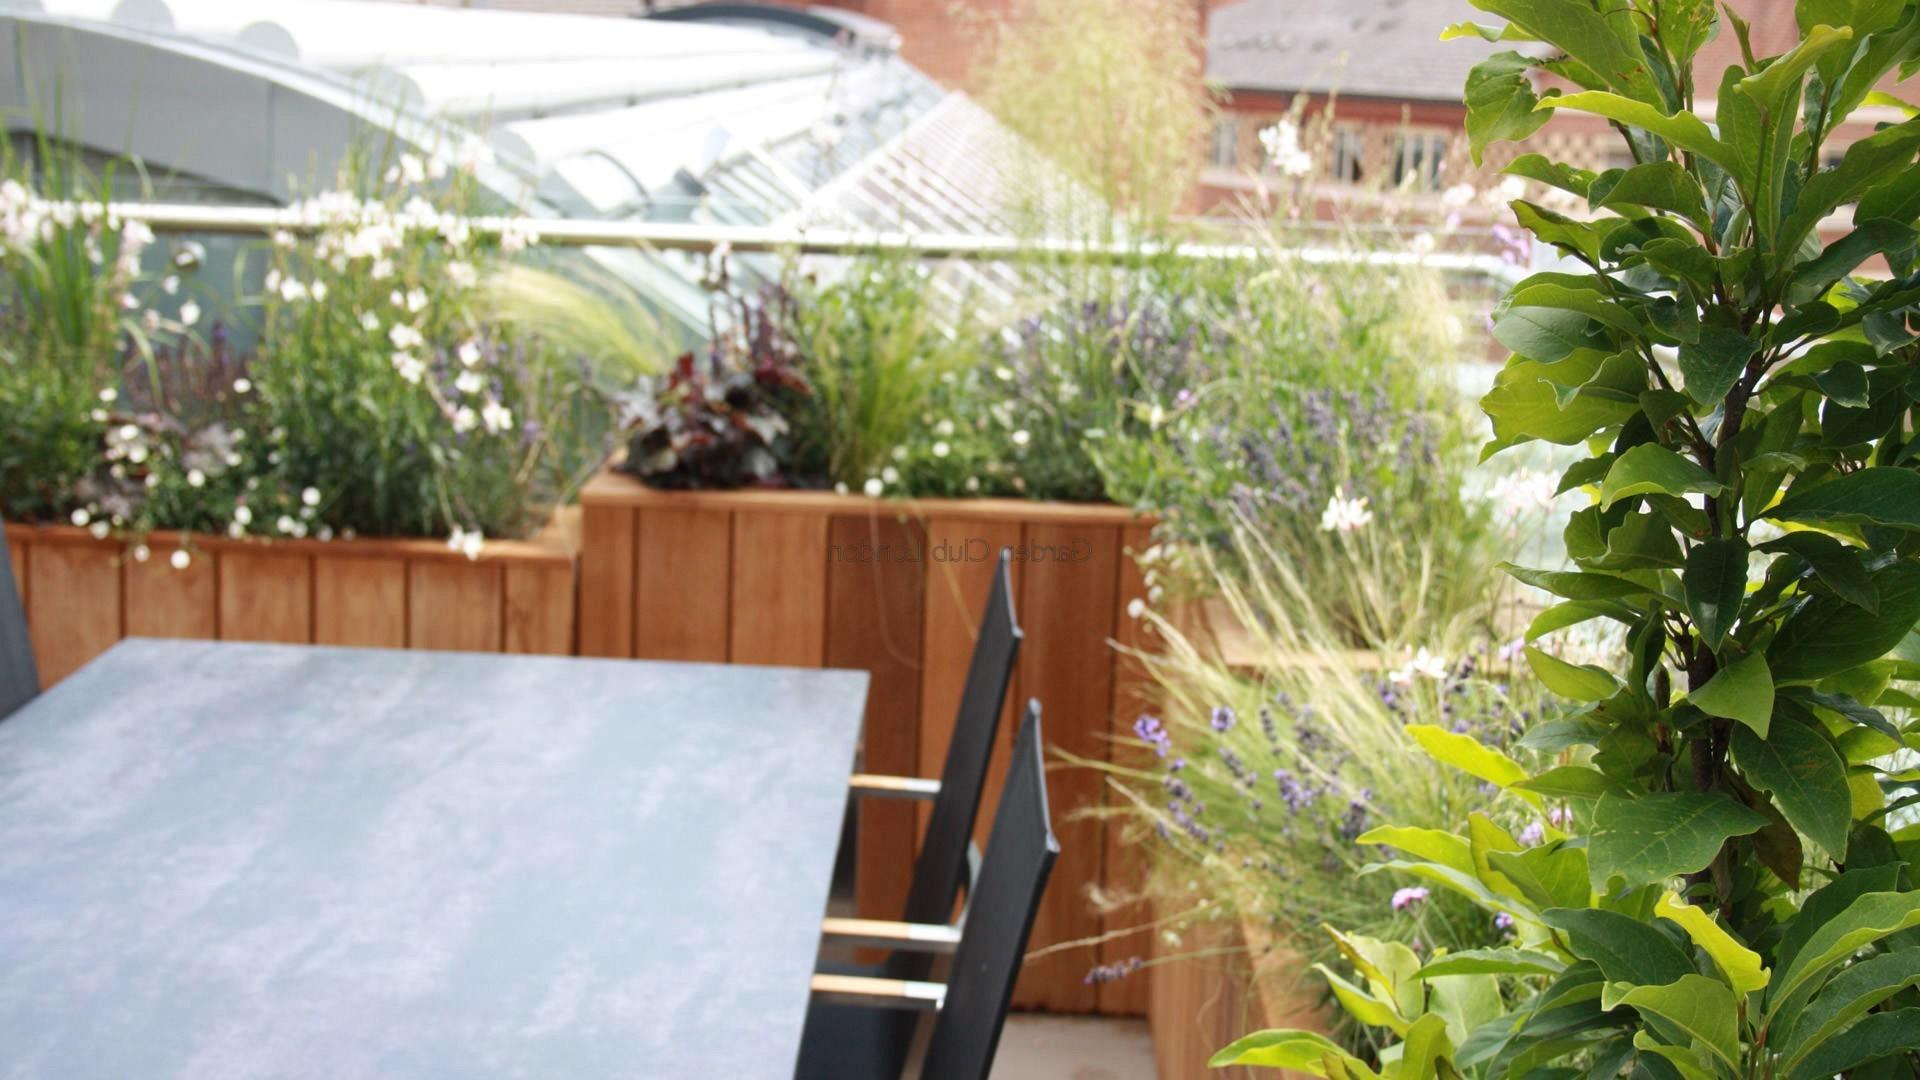 Terrace Garden Tips Turn Into Urban Oasis